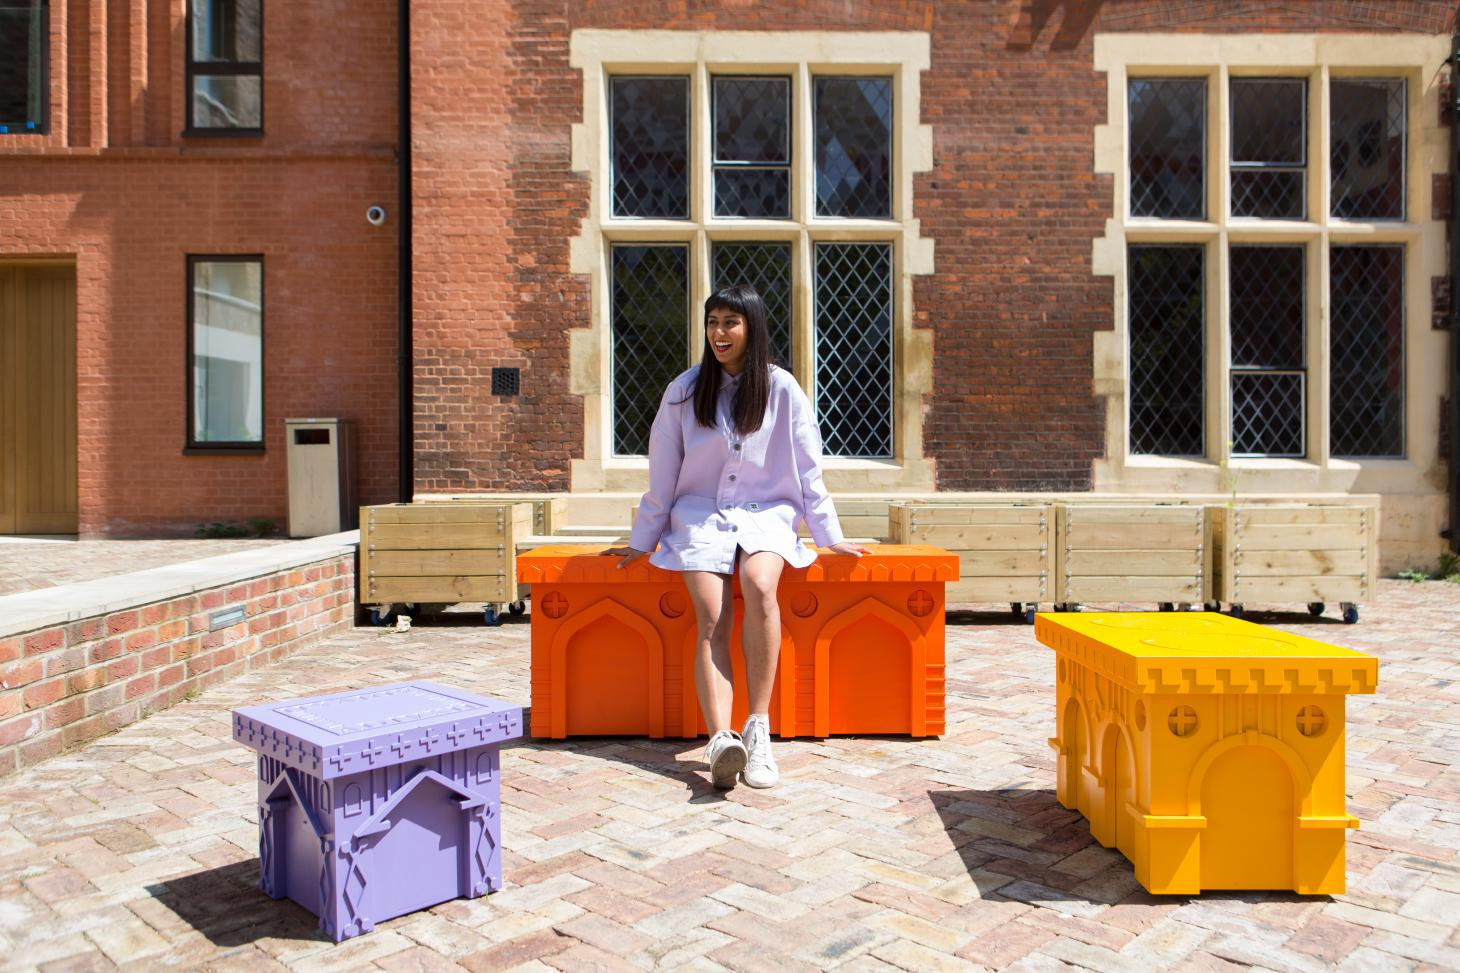 Monuments To Mingling By Sohanna Srinivasan In Collaboration With Joyce And Joyce Joinery And A Small World for the 2021 LFA Benches competition